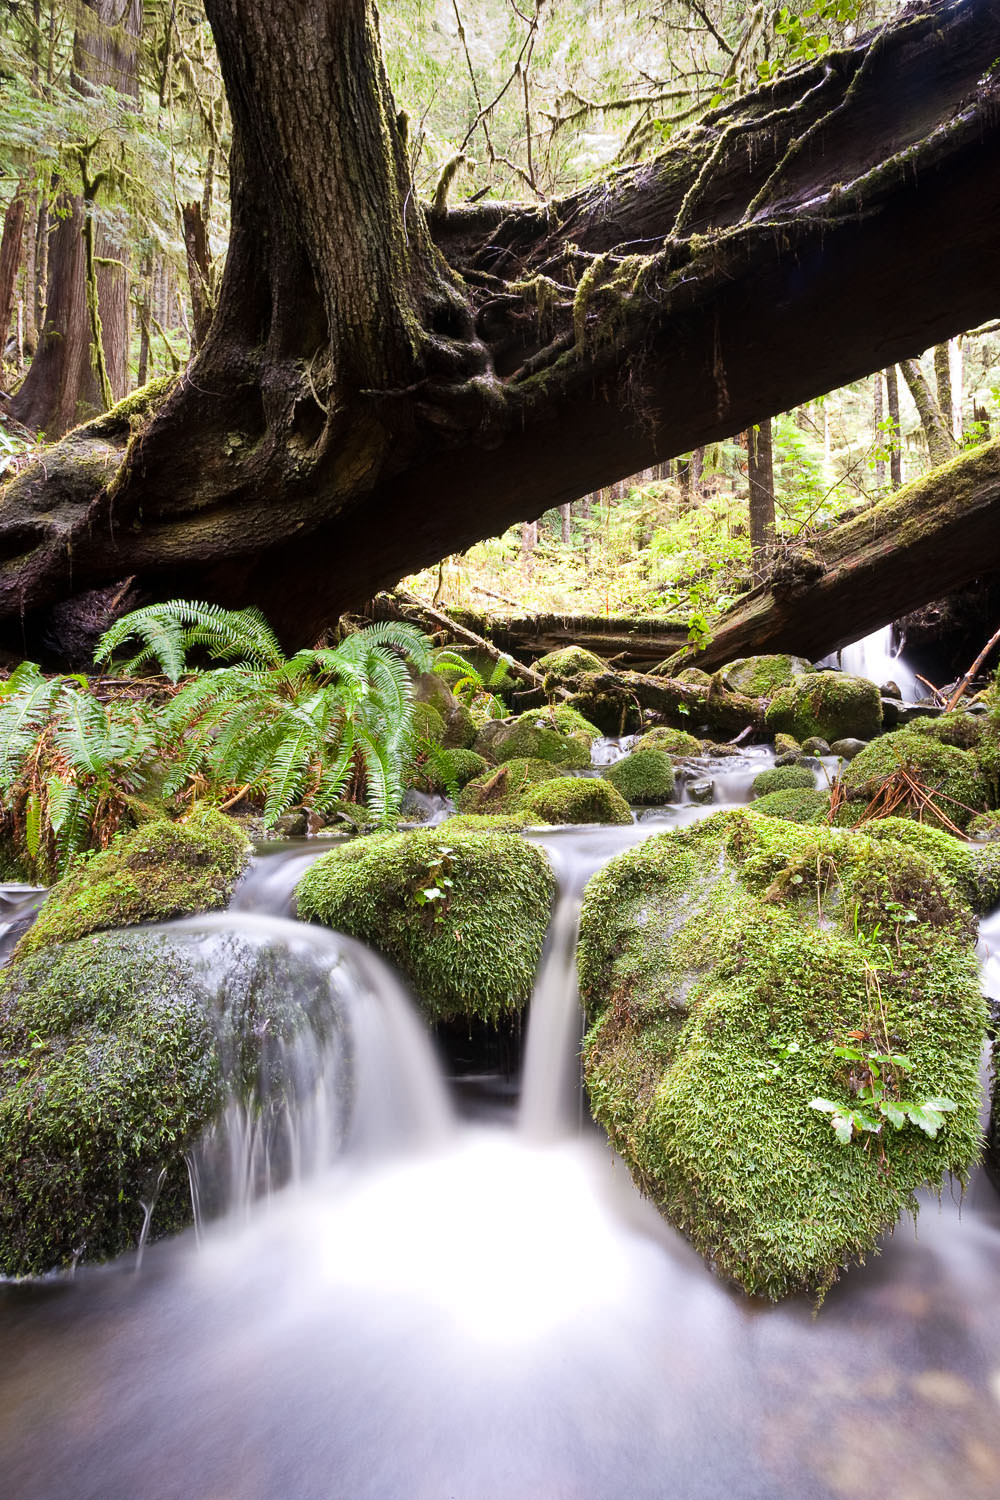 avatar-grove-water-creek-moss.jpg